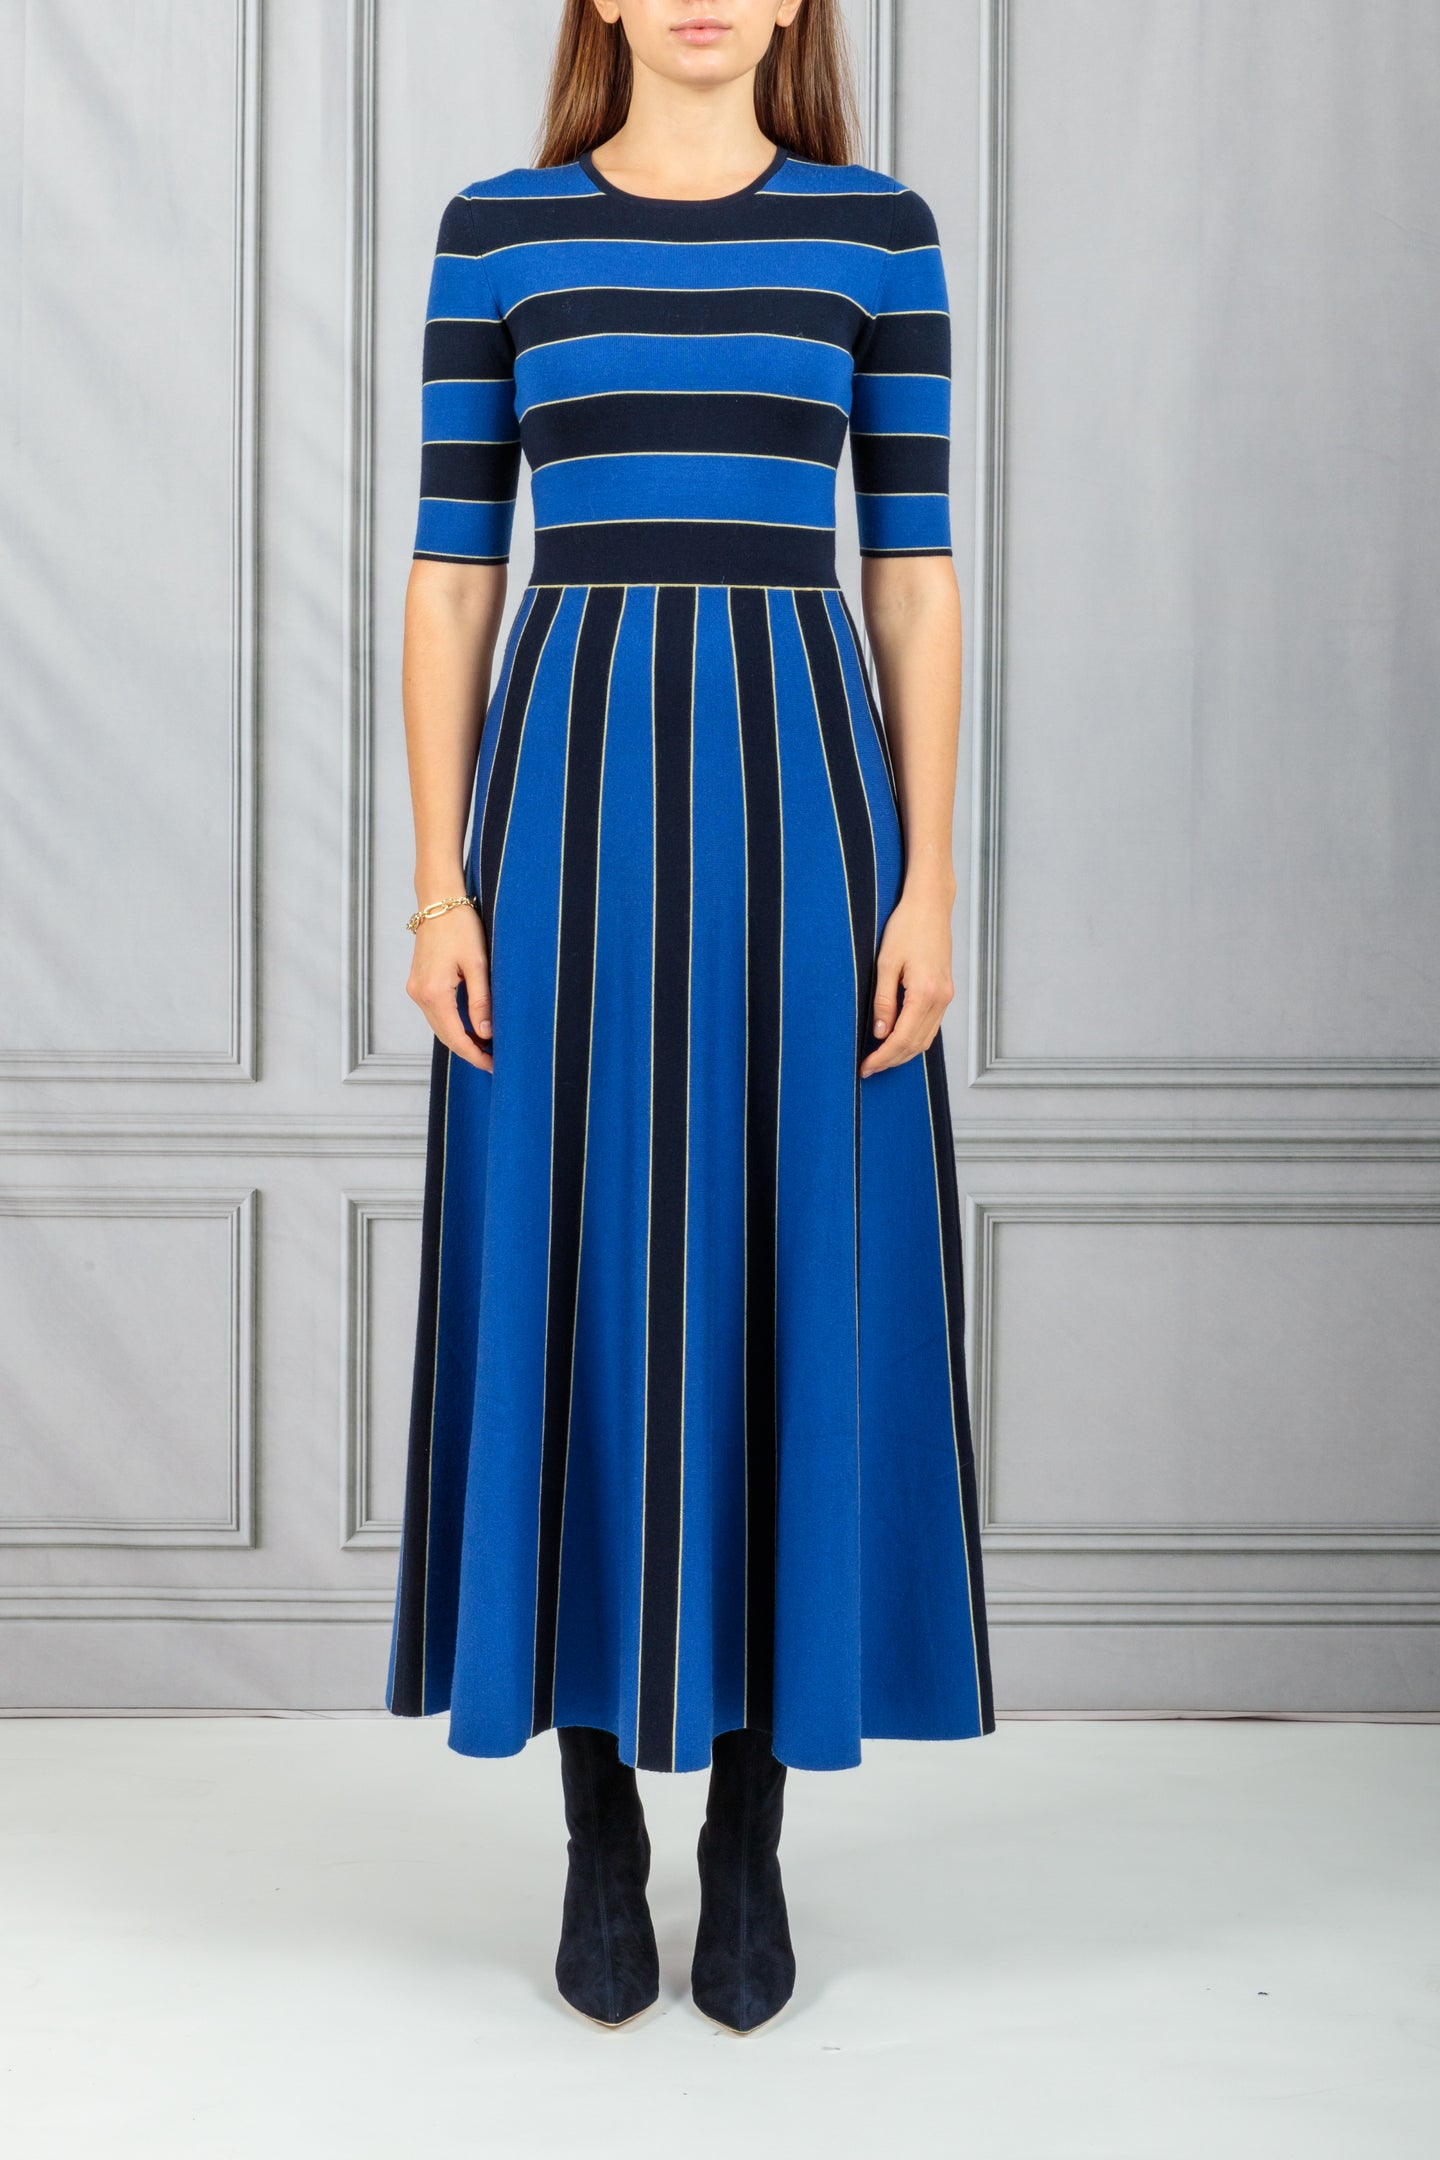 Capote Waisted Flare Knit Dress - Navy with Cobalt Blue Stripe